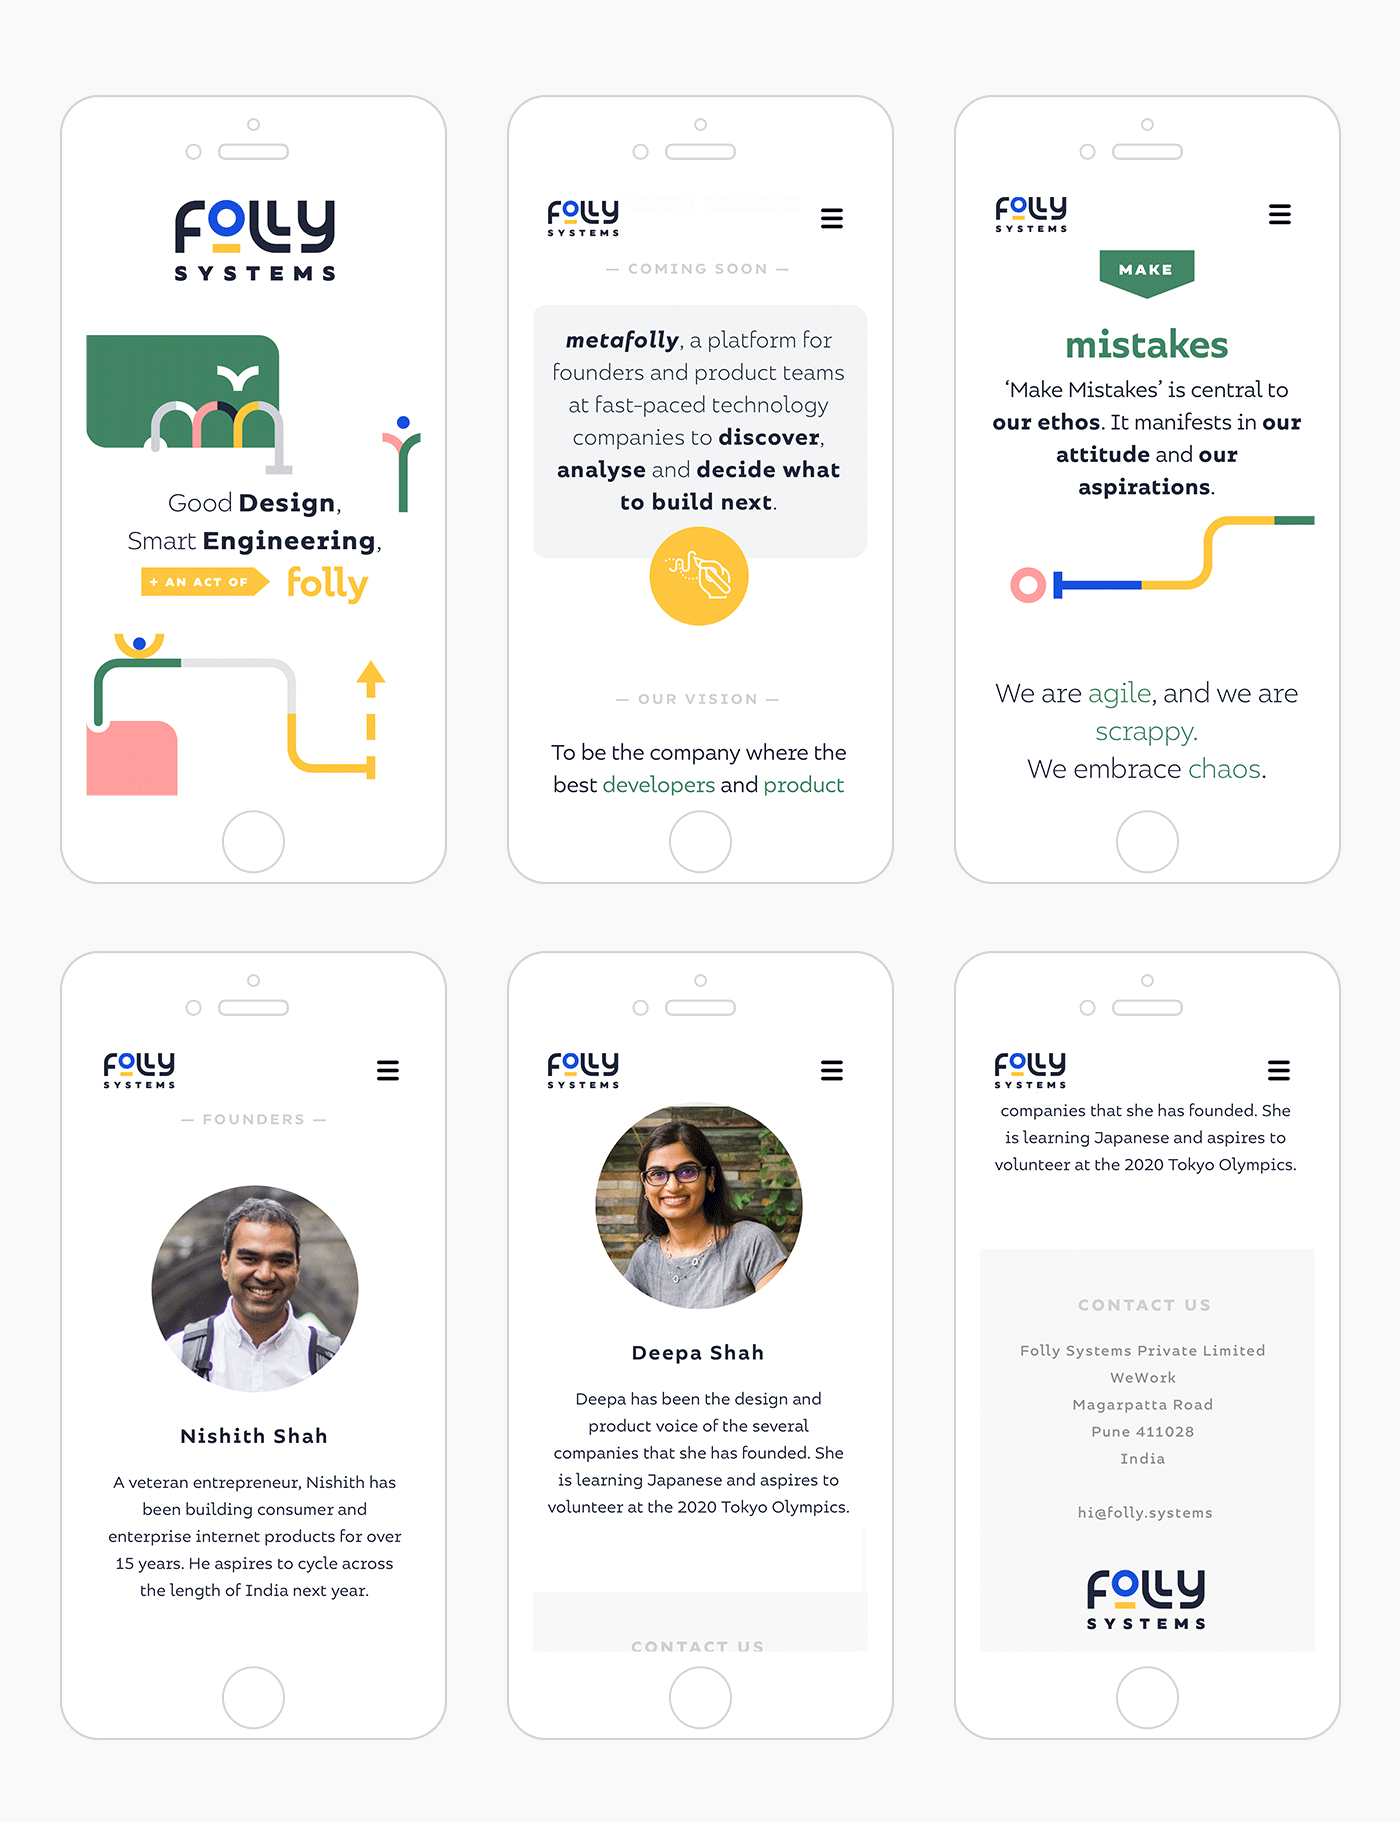 Folly Systems website design - mobile version